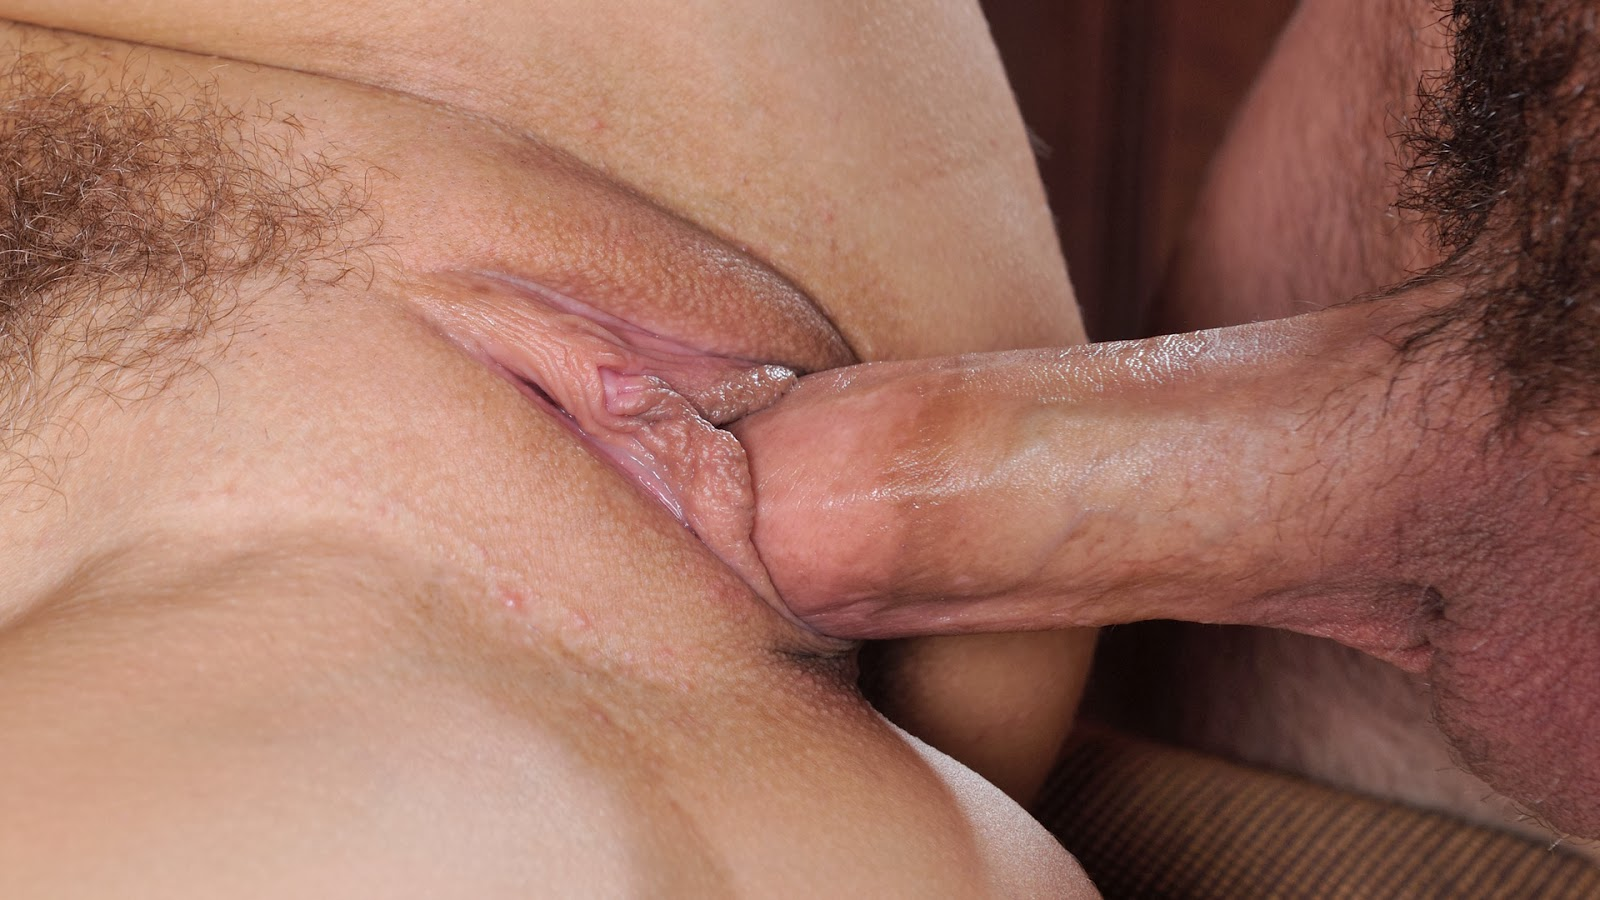 great-cunt-closeup-penetration-naked-girls-hand-in-guys-pants